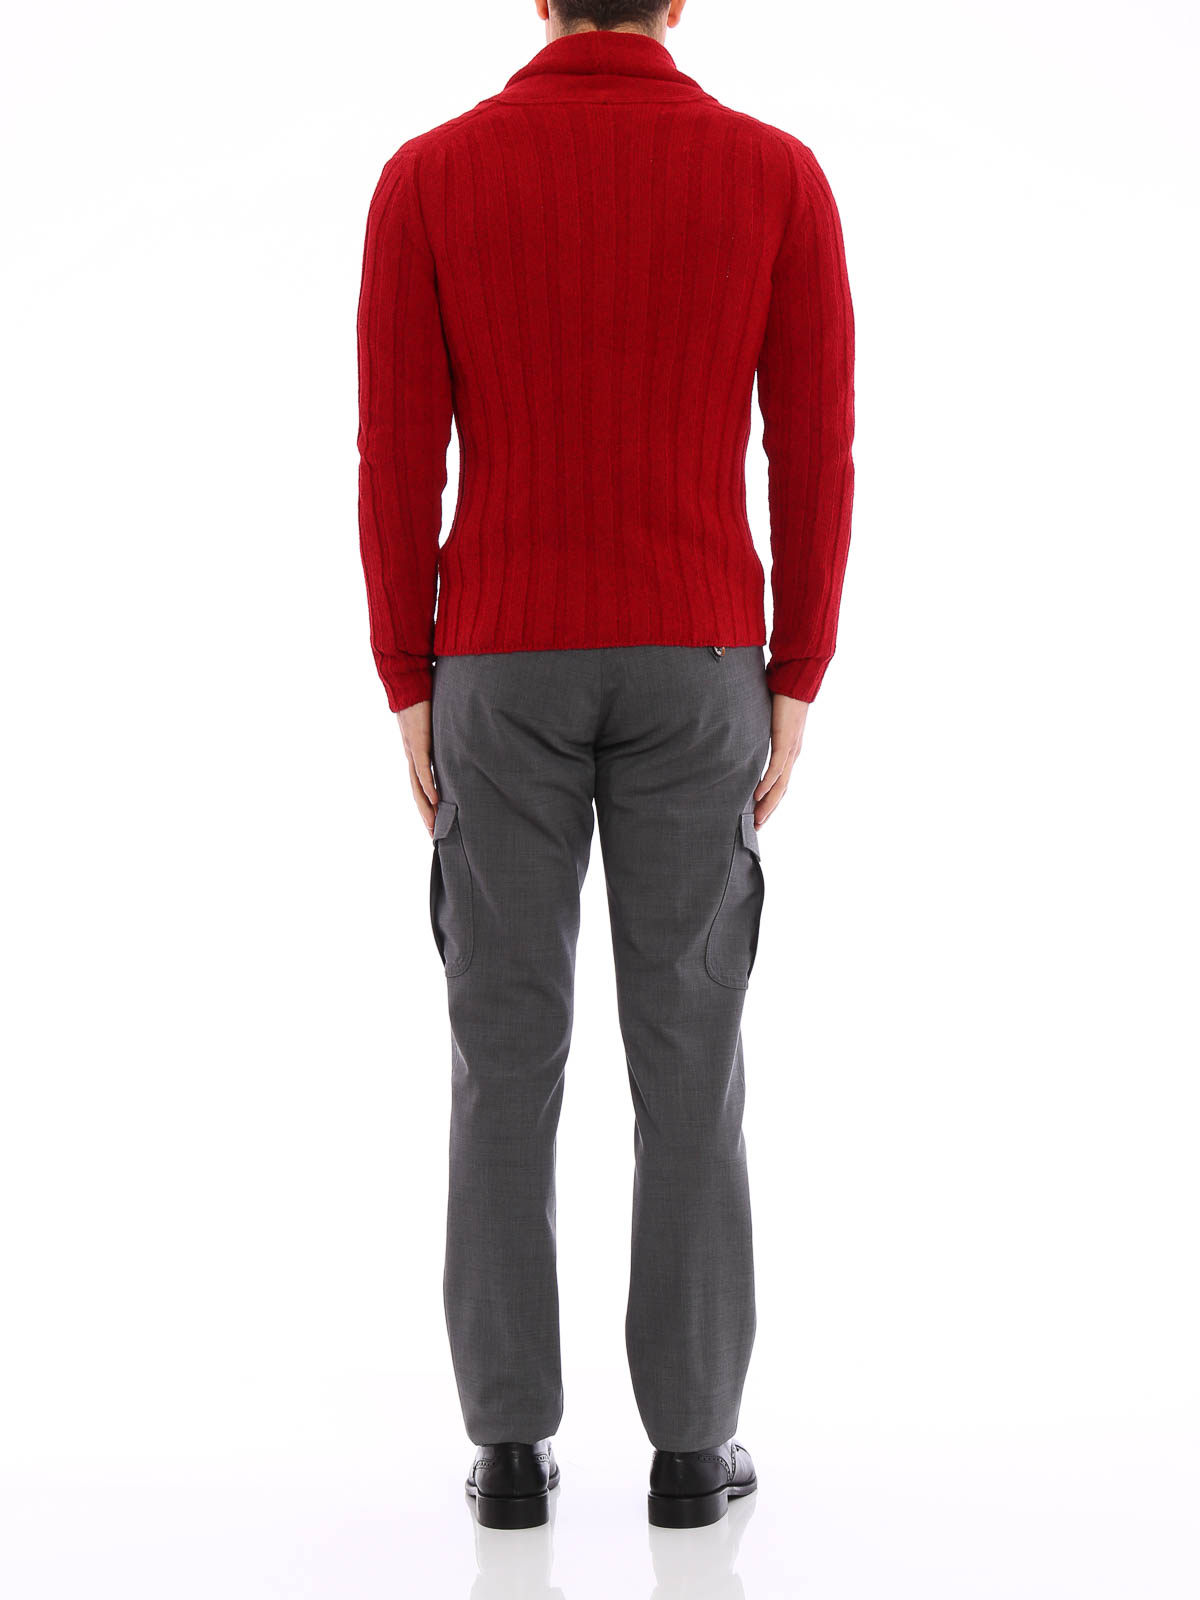 Men's Sweaters- Versatile Outfit Ideas